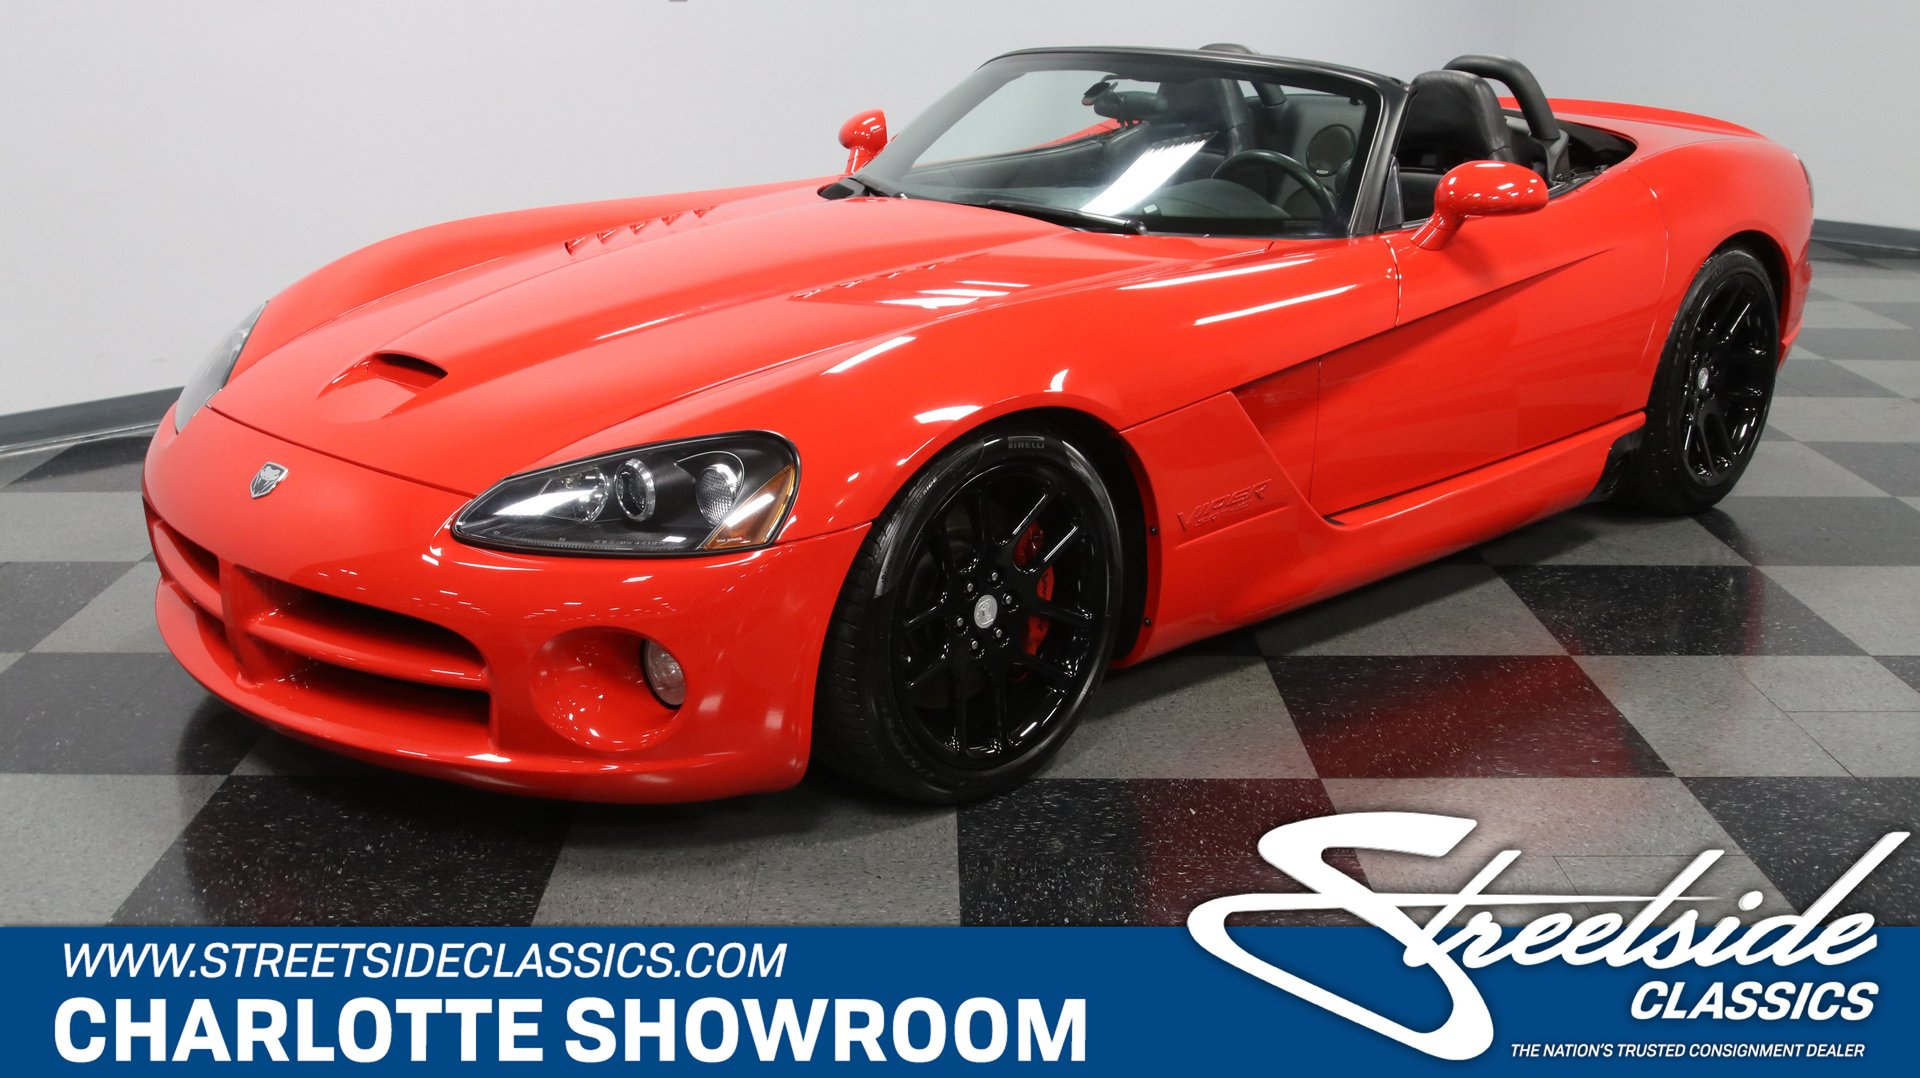 2003 Dodge Viper Classic Cars For Sale Streetside Classics The Nation S 1 Consignment Dealer